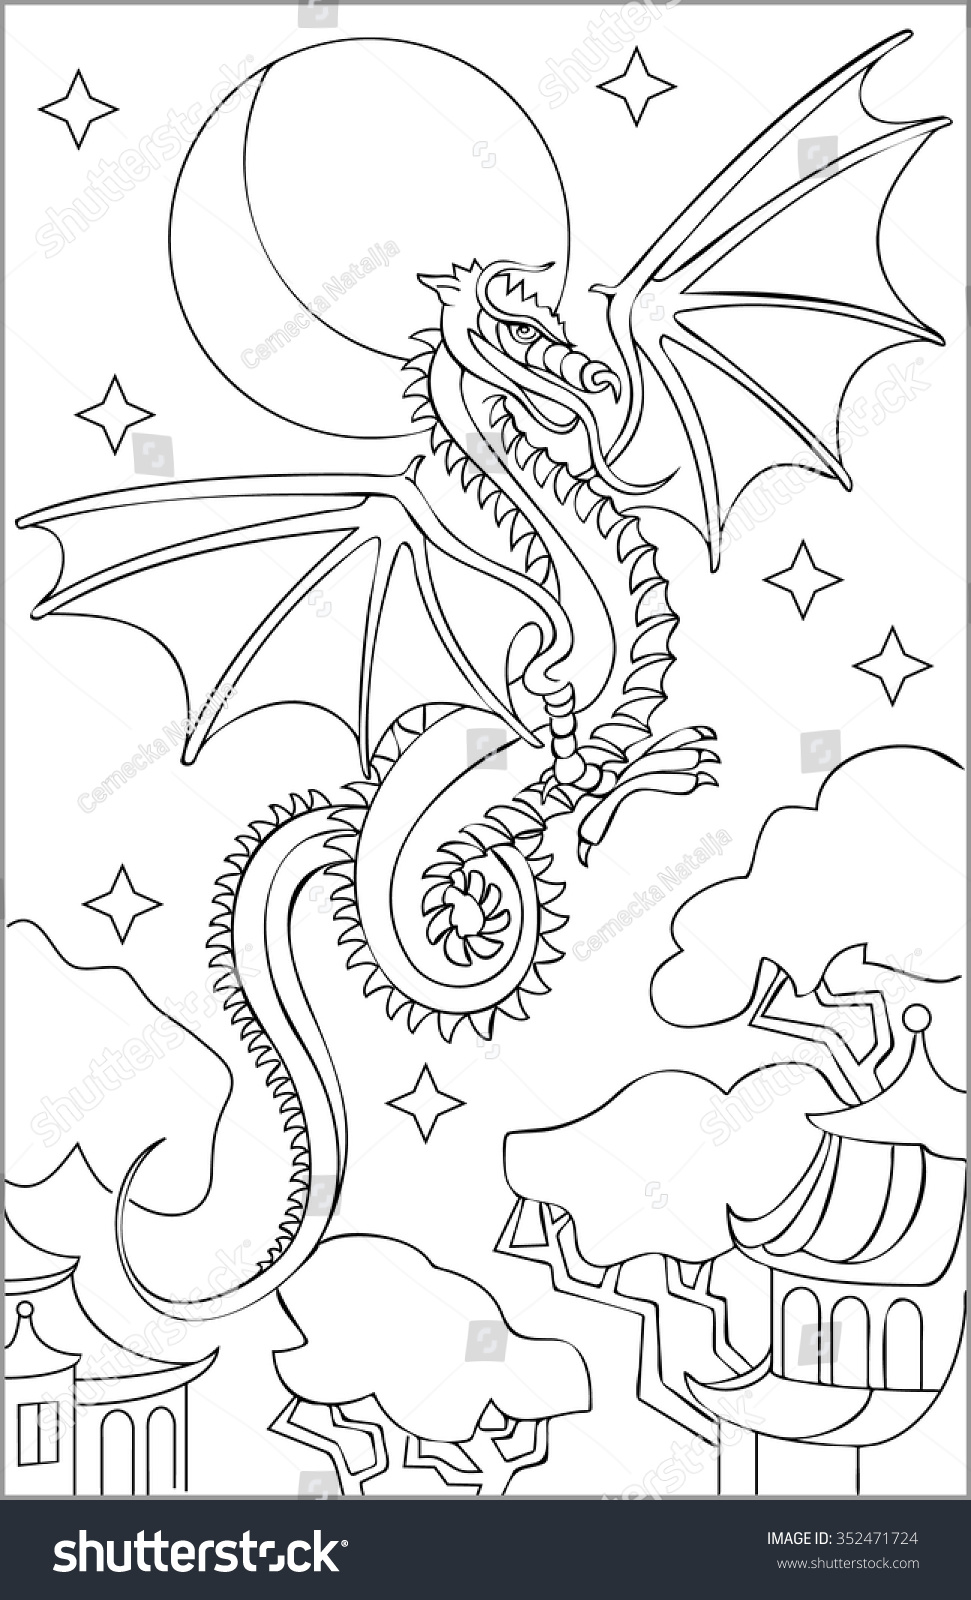 page black white drawing dragon coloring stock vector 352471724